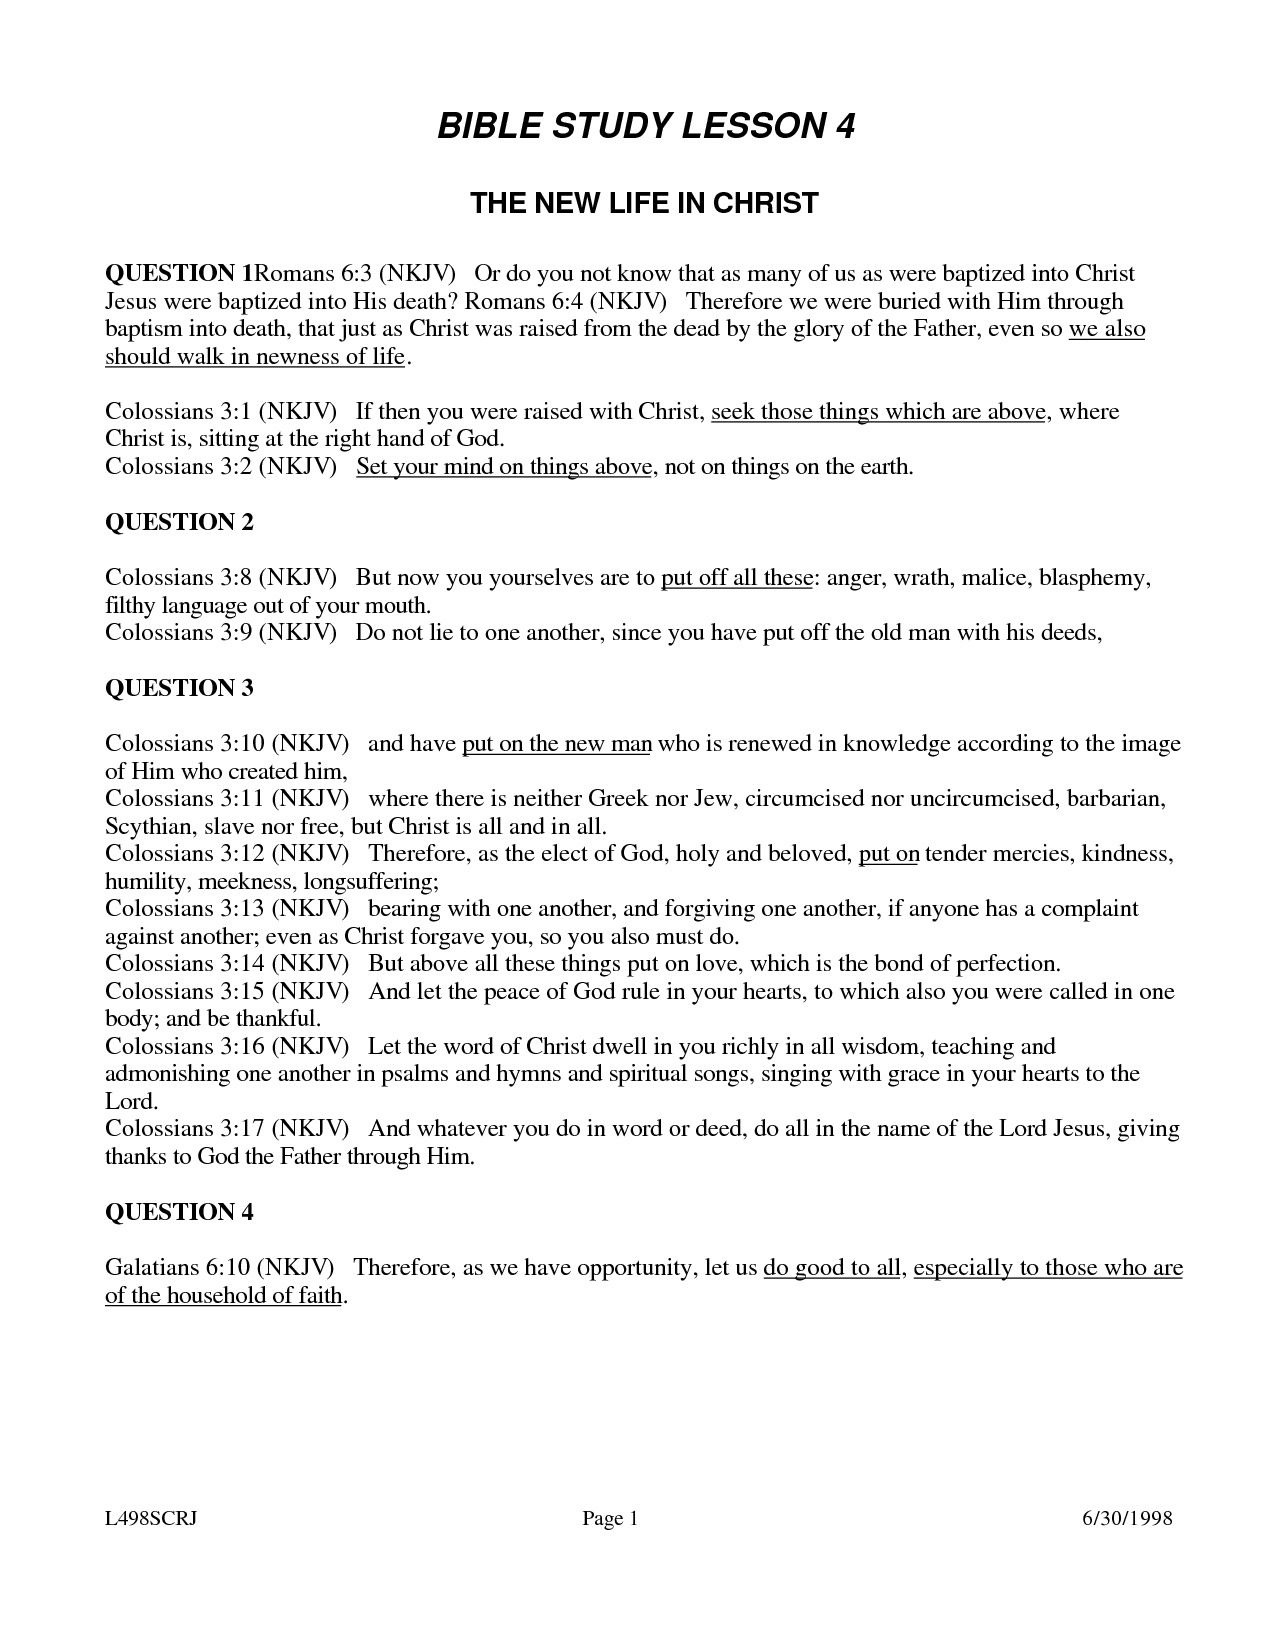 Weekly Bible Study Lesson - Free Printable Sunday School Lessons For Teens